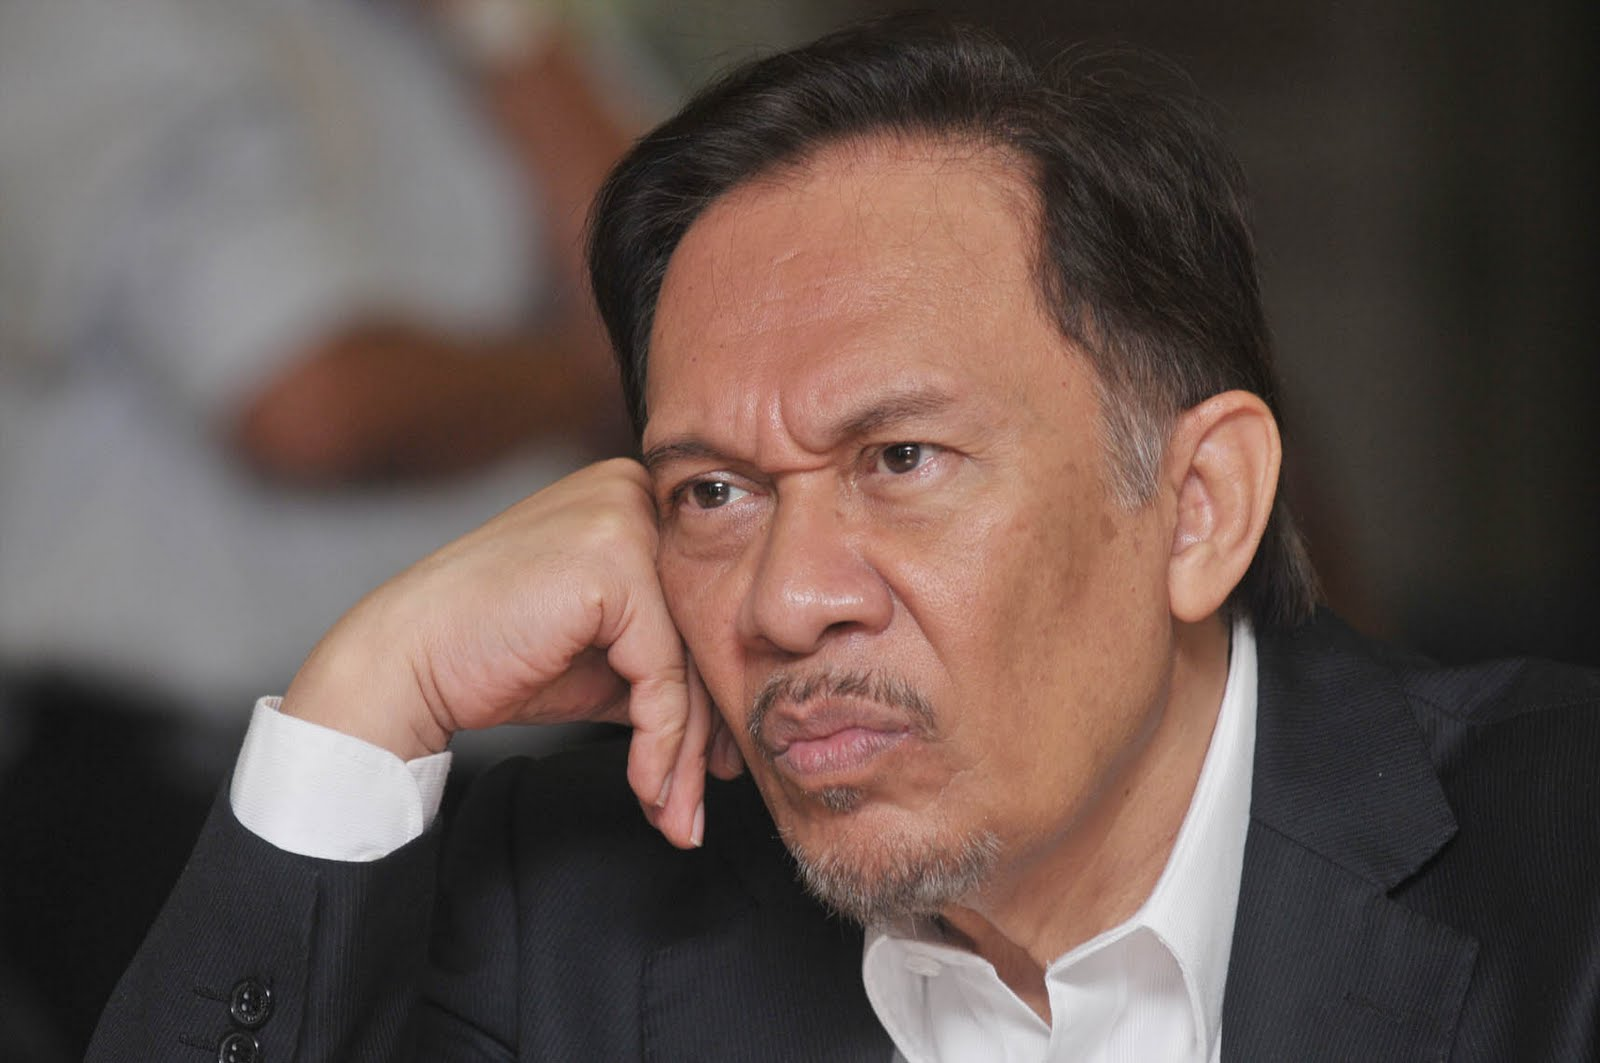 Anwar Ibrahim's Permatang Pauh seat has been announce as vacant but his lawyer begs to differ.